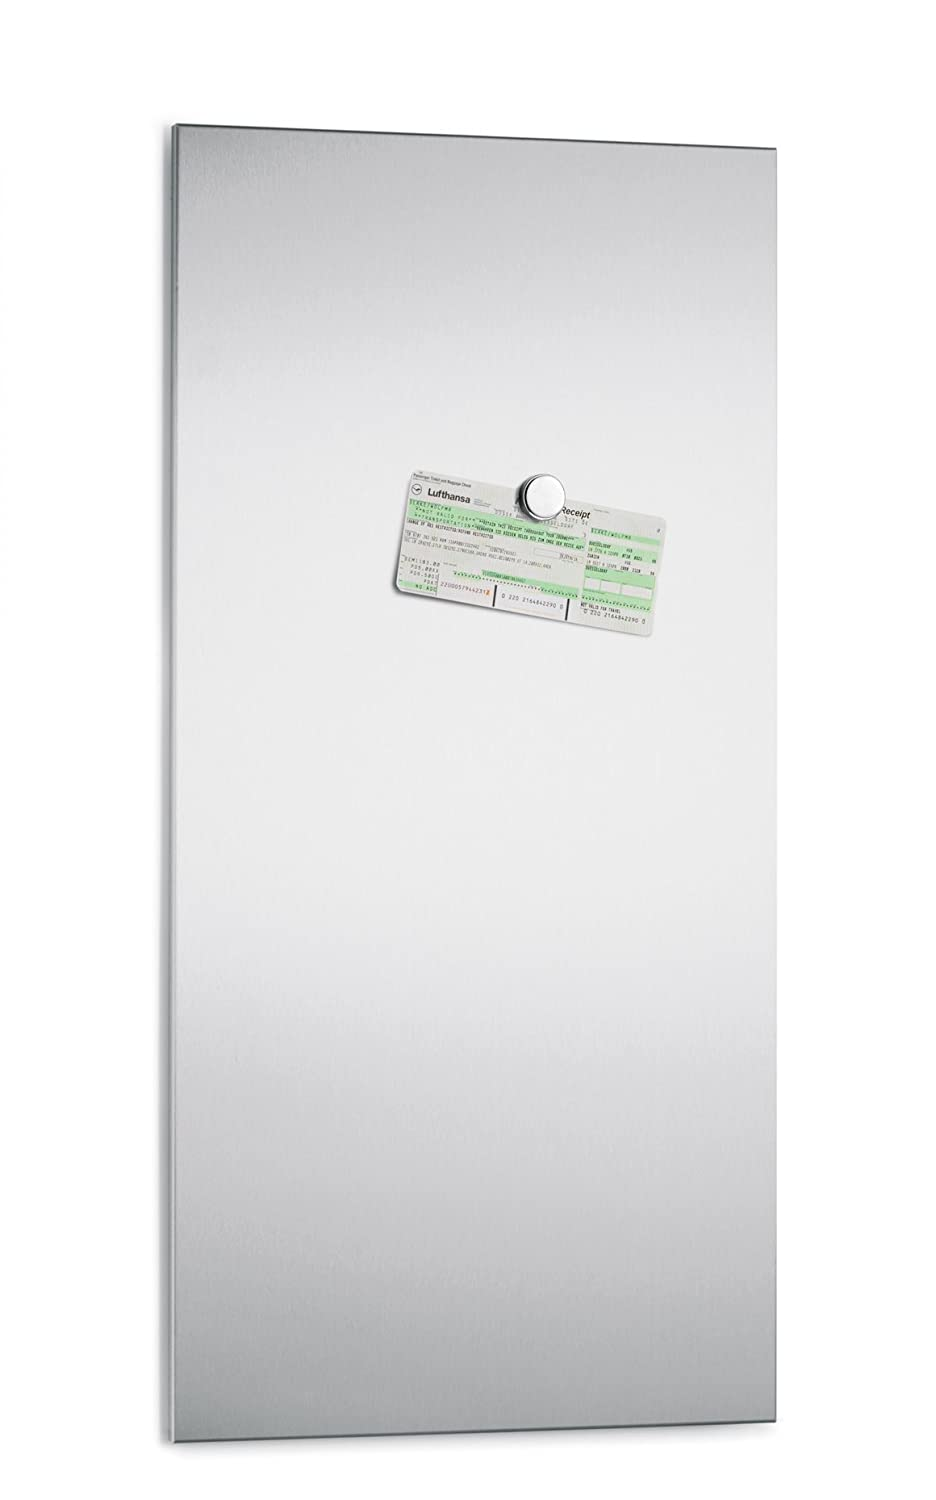 stainless steel dry erase boards clean and strong  - blomus magnet board  x  cm blomus stainless steel